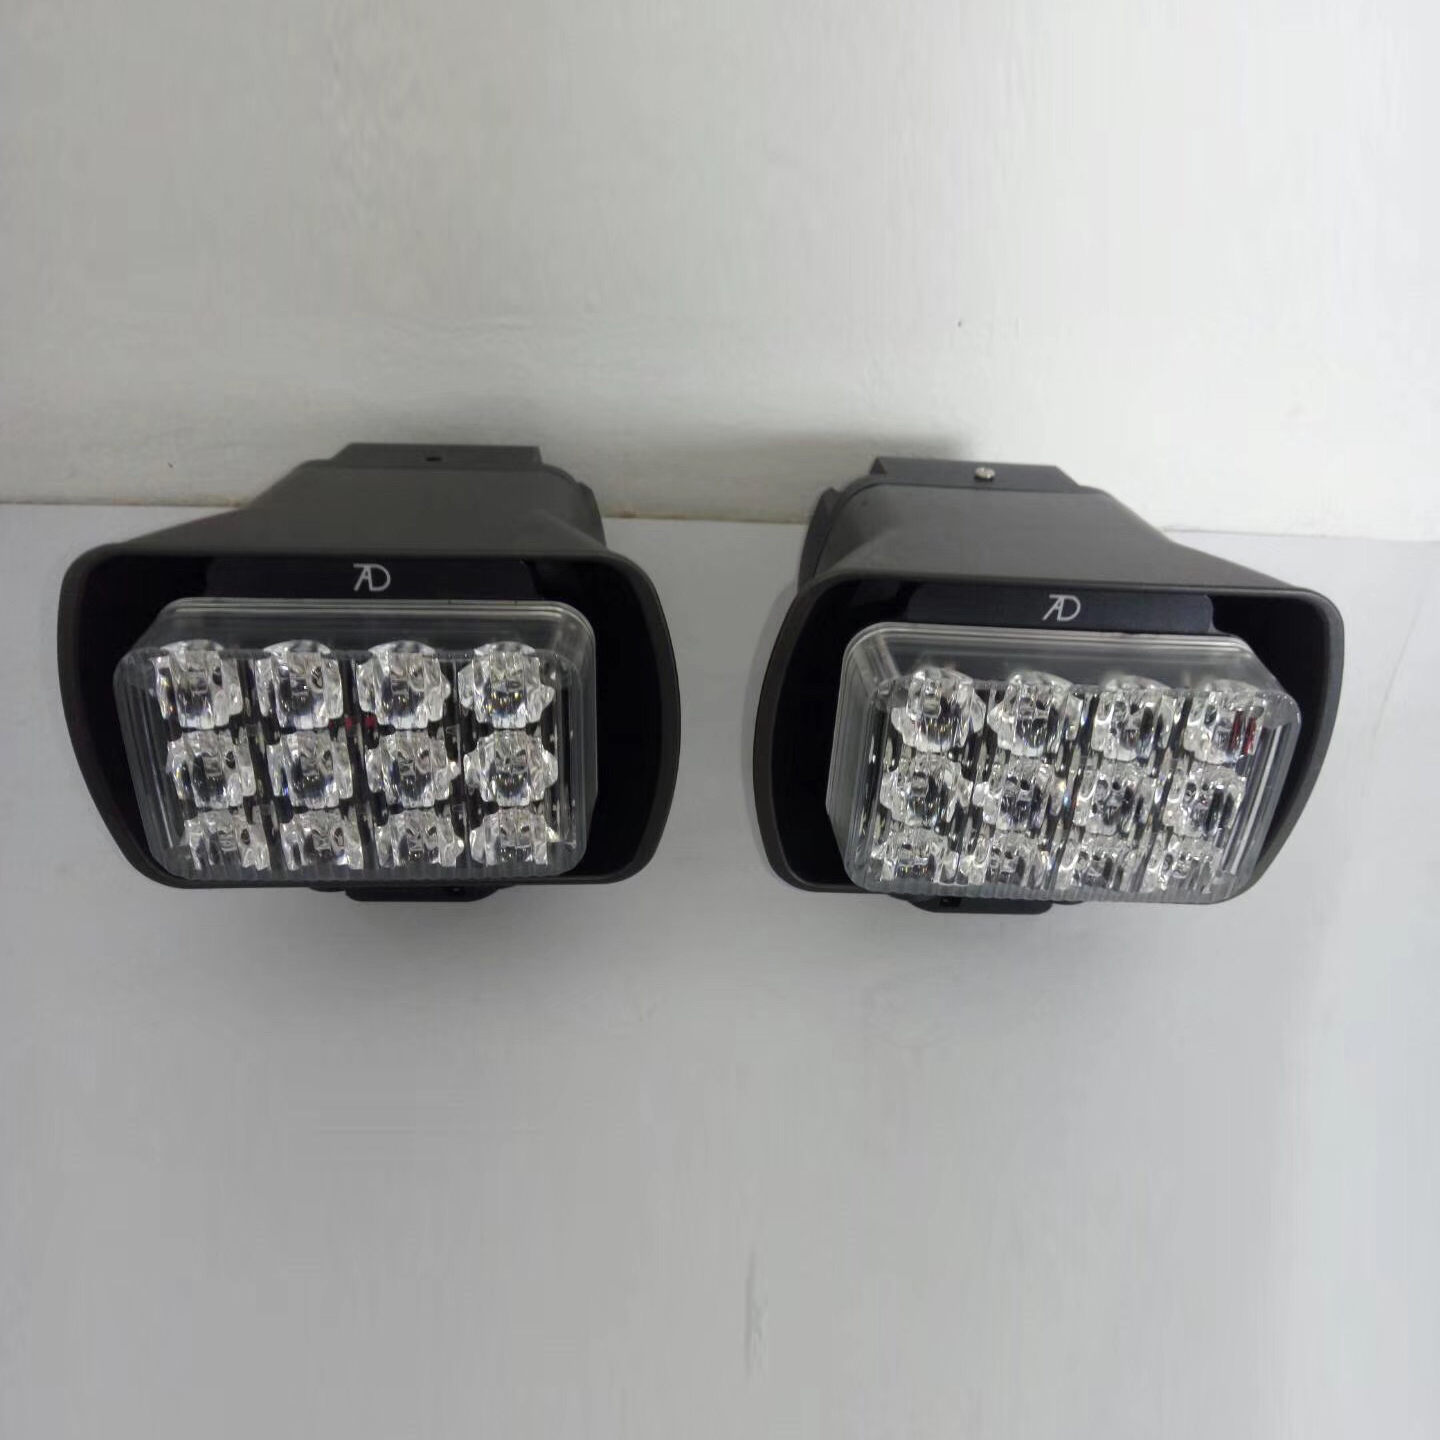 50W Police Motocycle beautiful appearance police auto use 24V lighting siren speaker